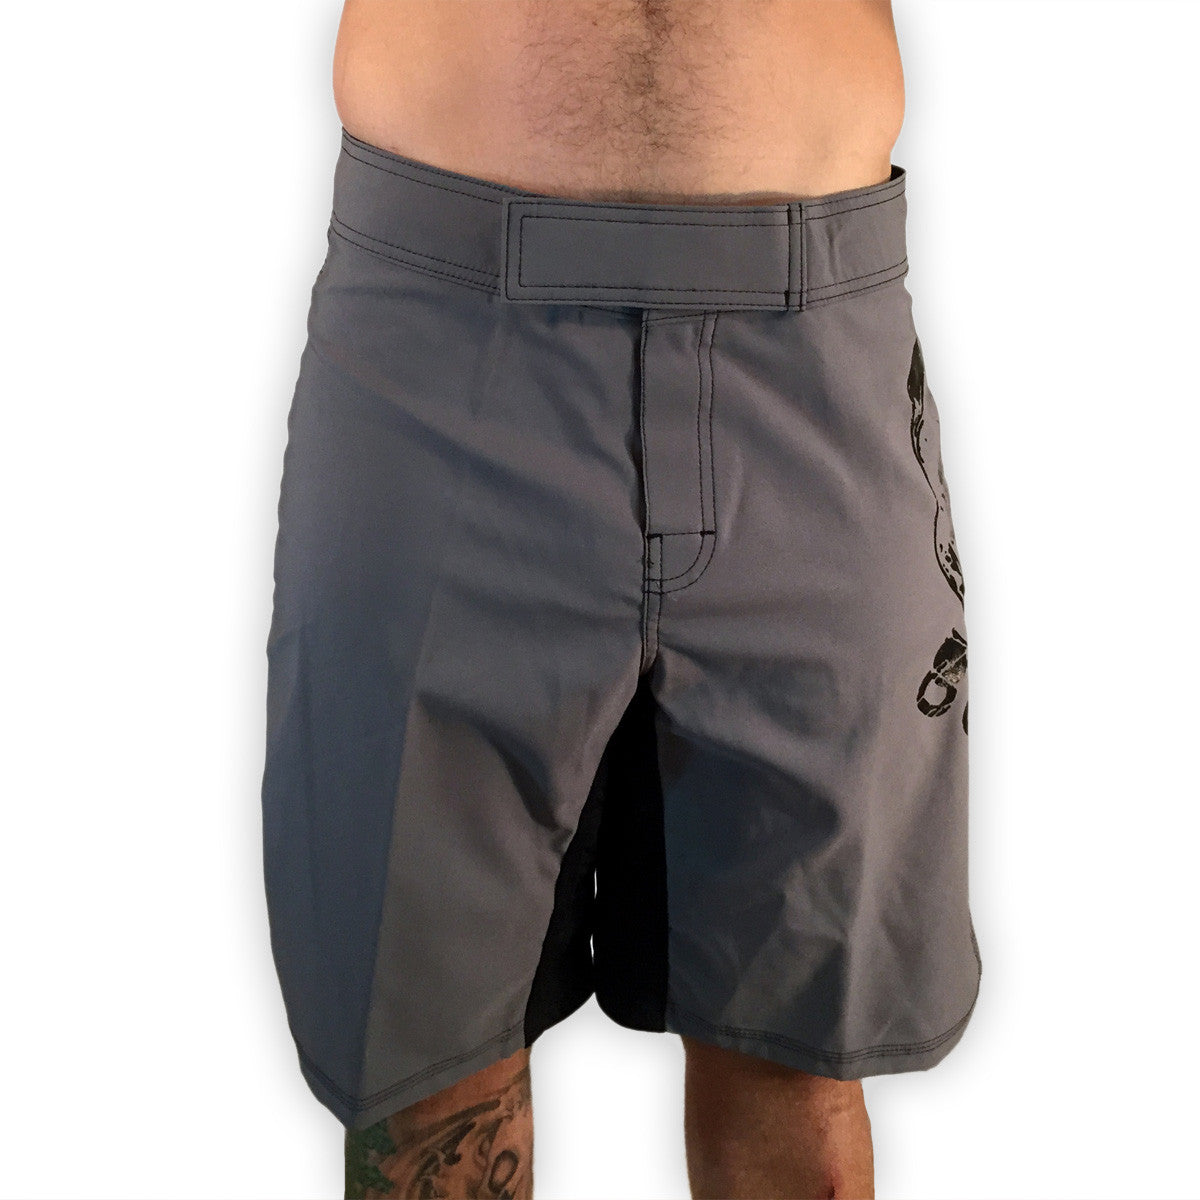 Pitbull WOD Shorts Gray Mens Shorts - 321Apparel